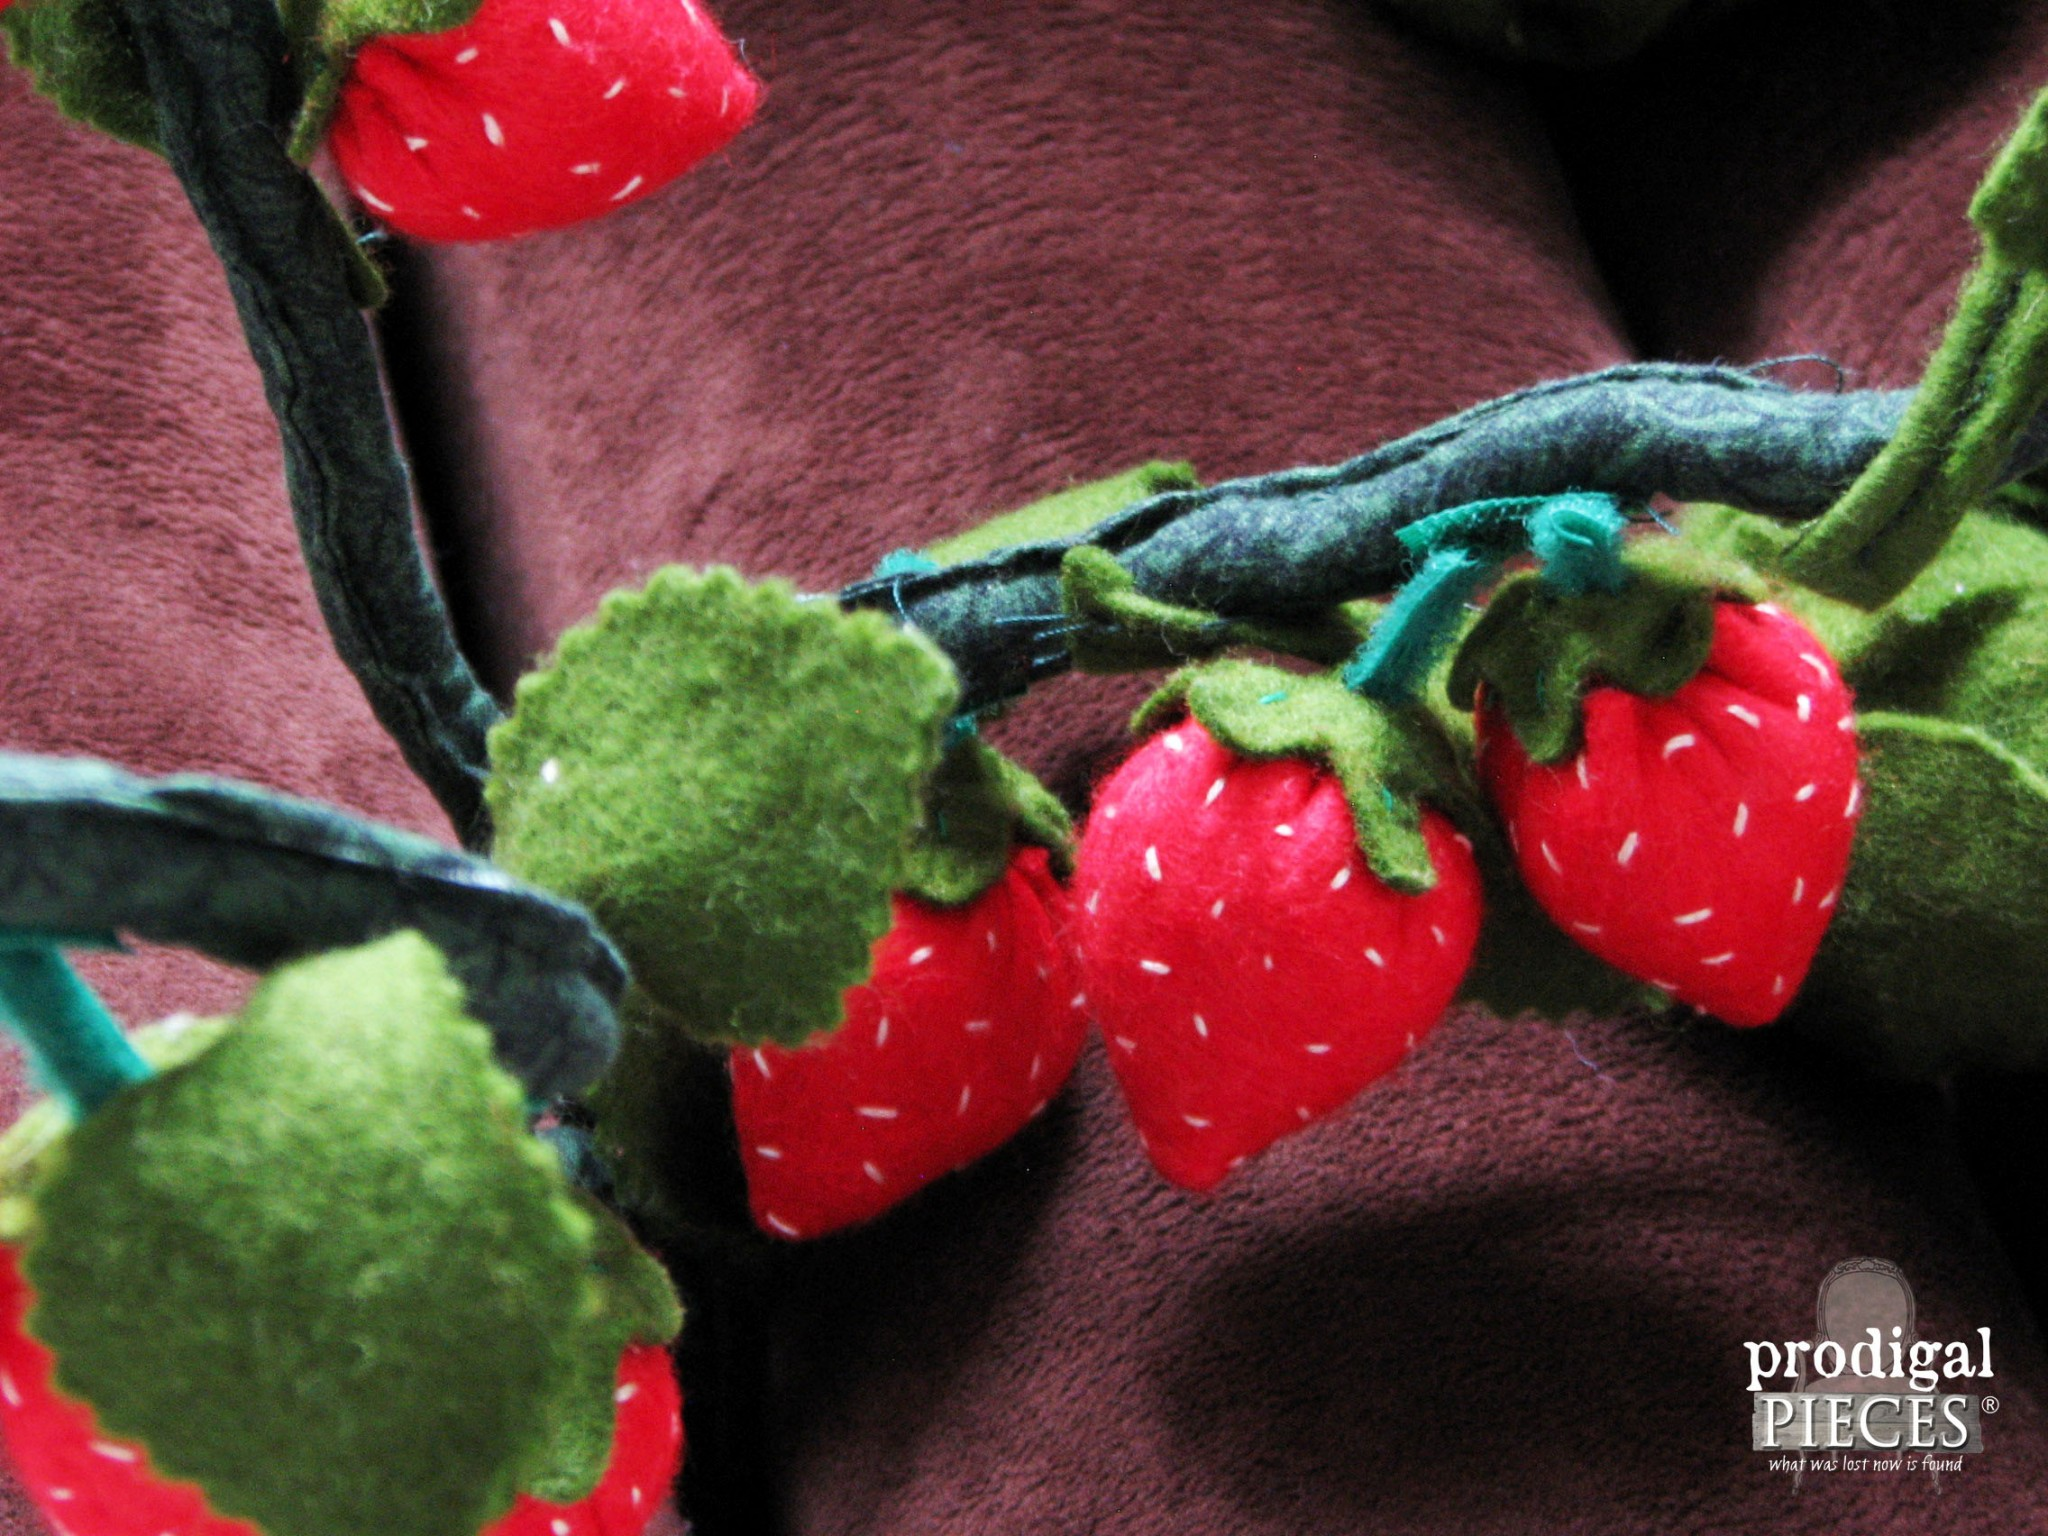 Handmade Felt Pickable Strawberries by Prodigal Pieces | www.prodigalpieces.com